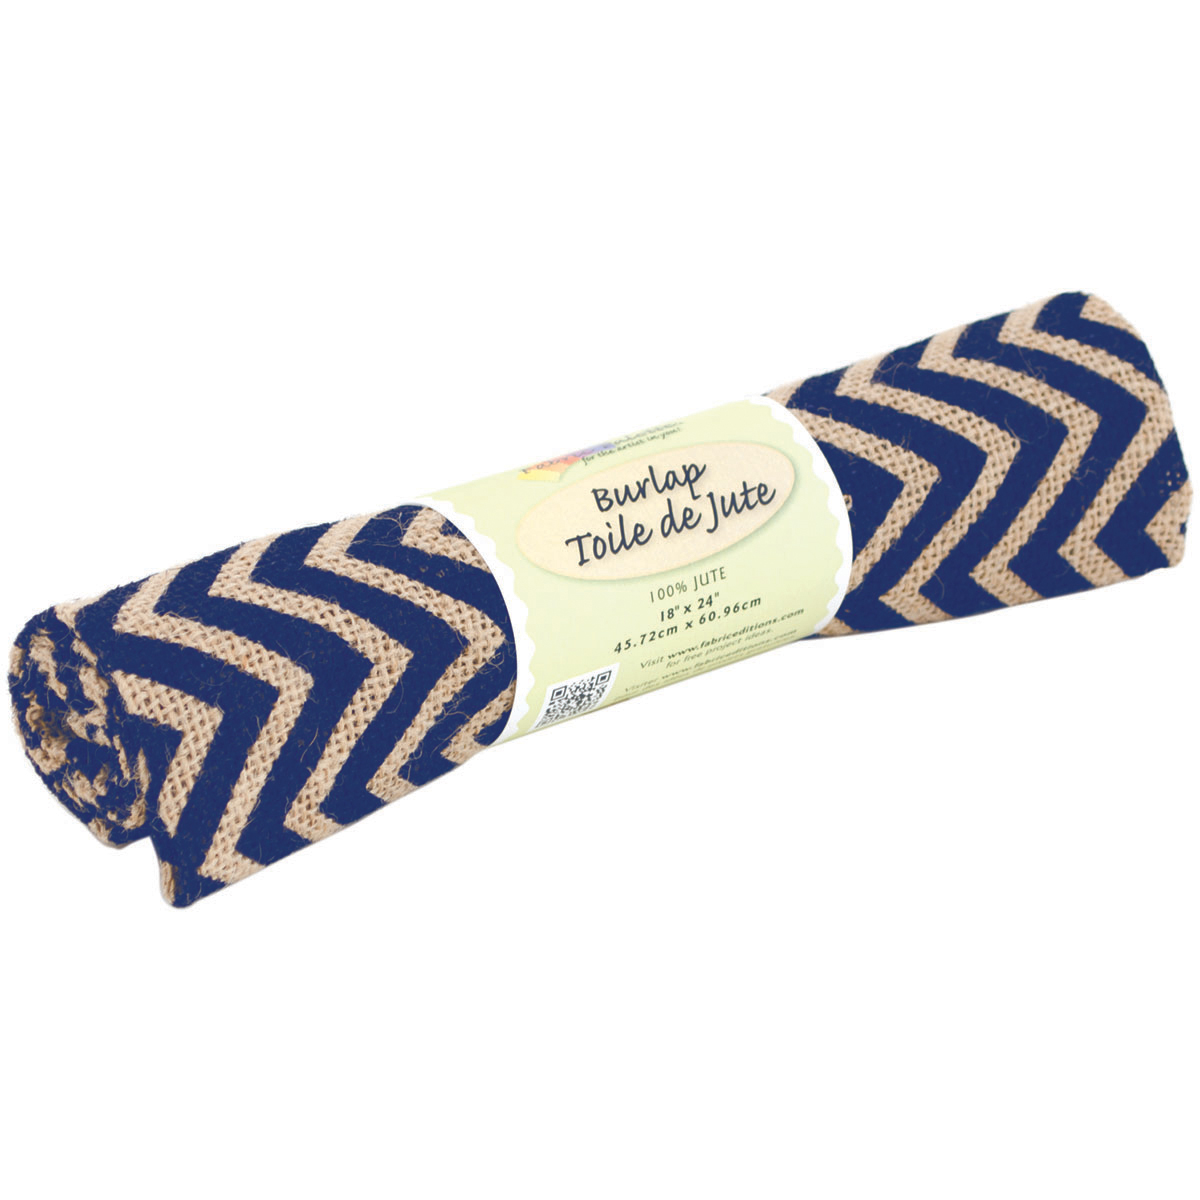 Fabric Editions Palette Printed Burlap Fabric, 18 by 24-Inch, Zigzag, Navy Multi-Colored